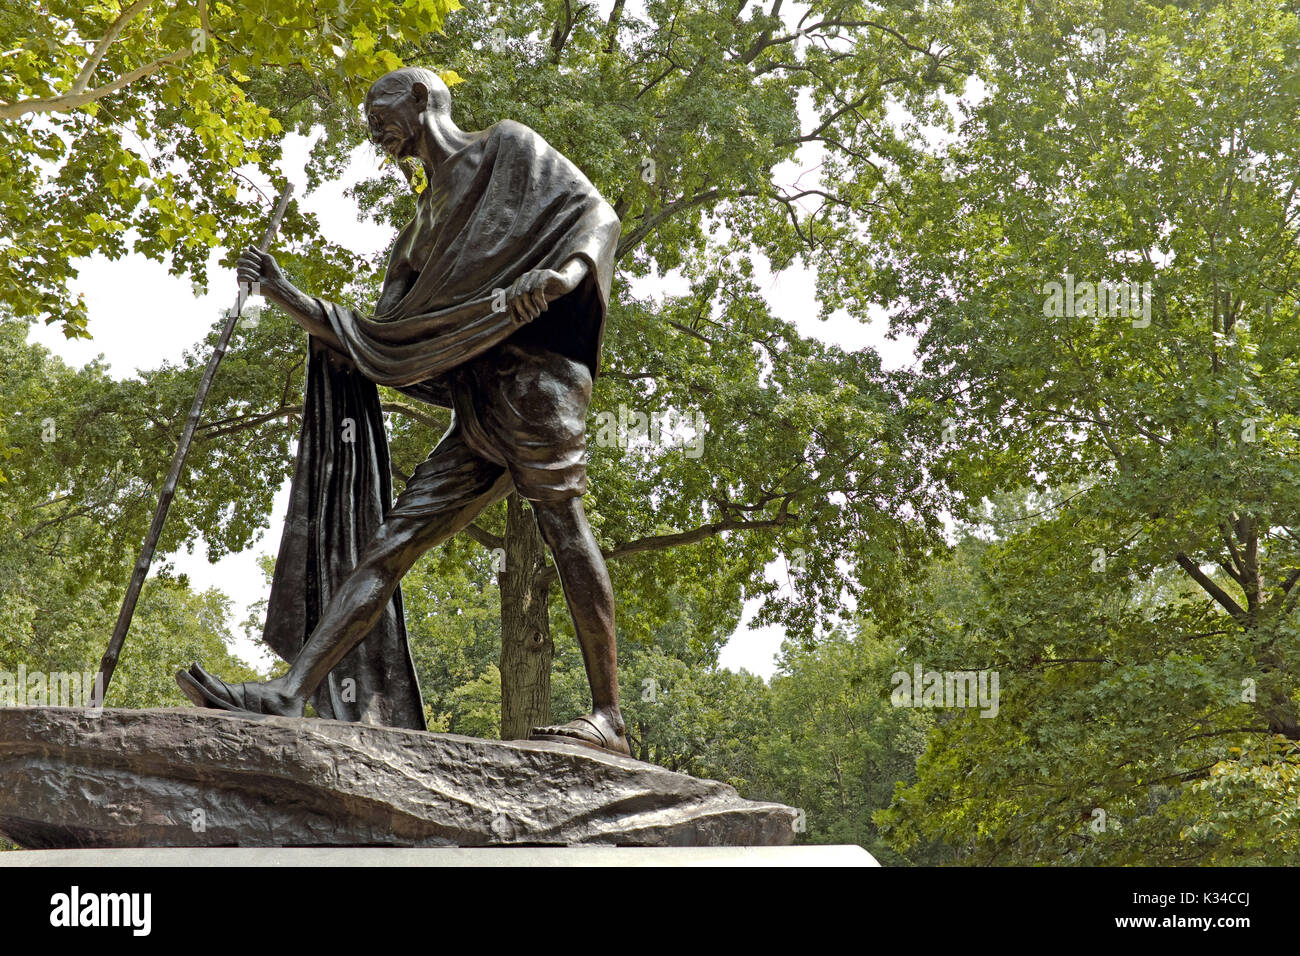 Statue of Mahatma Ghandi in the India Cultural Gardens section of the Cleveland, Ohio, USA Rockefeller Park Cultural Gardens - Stock Image